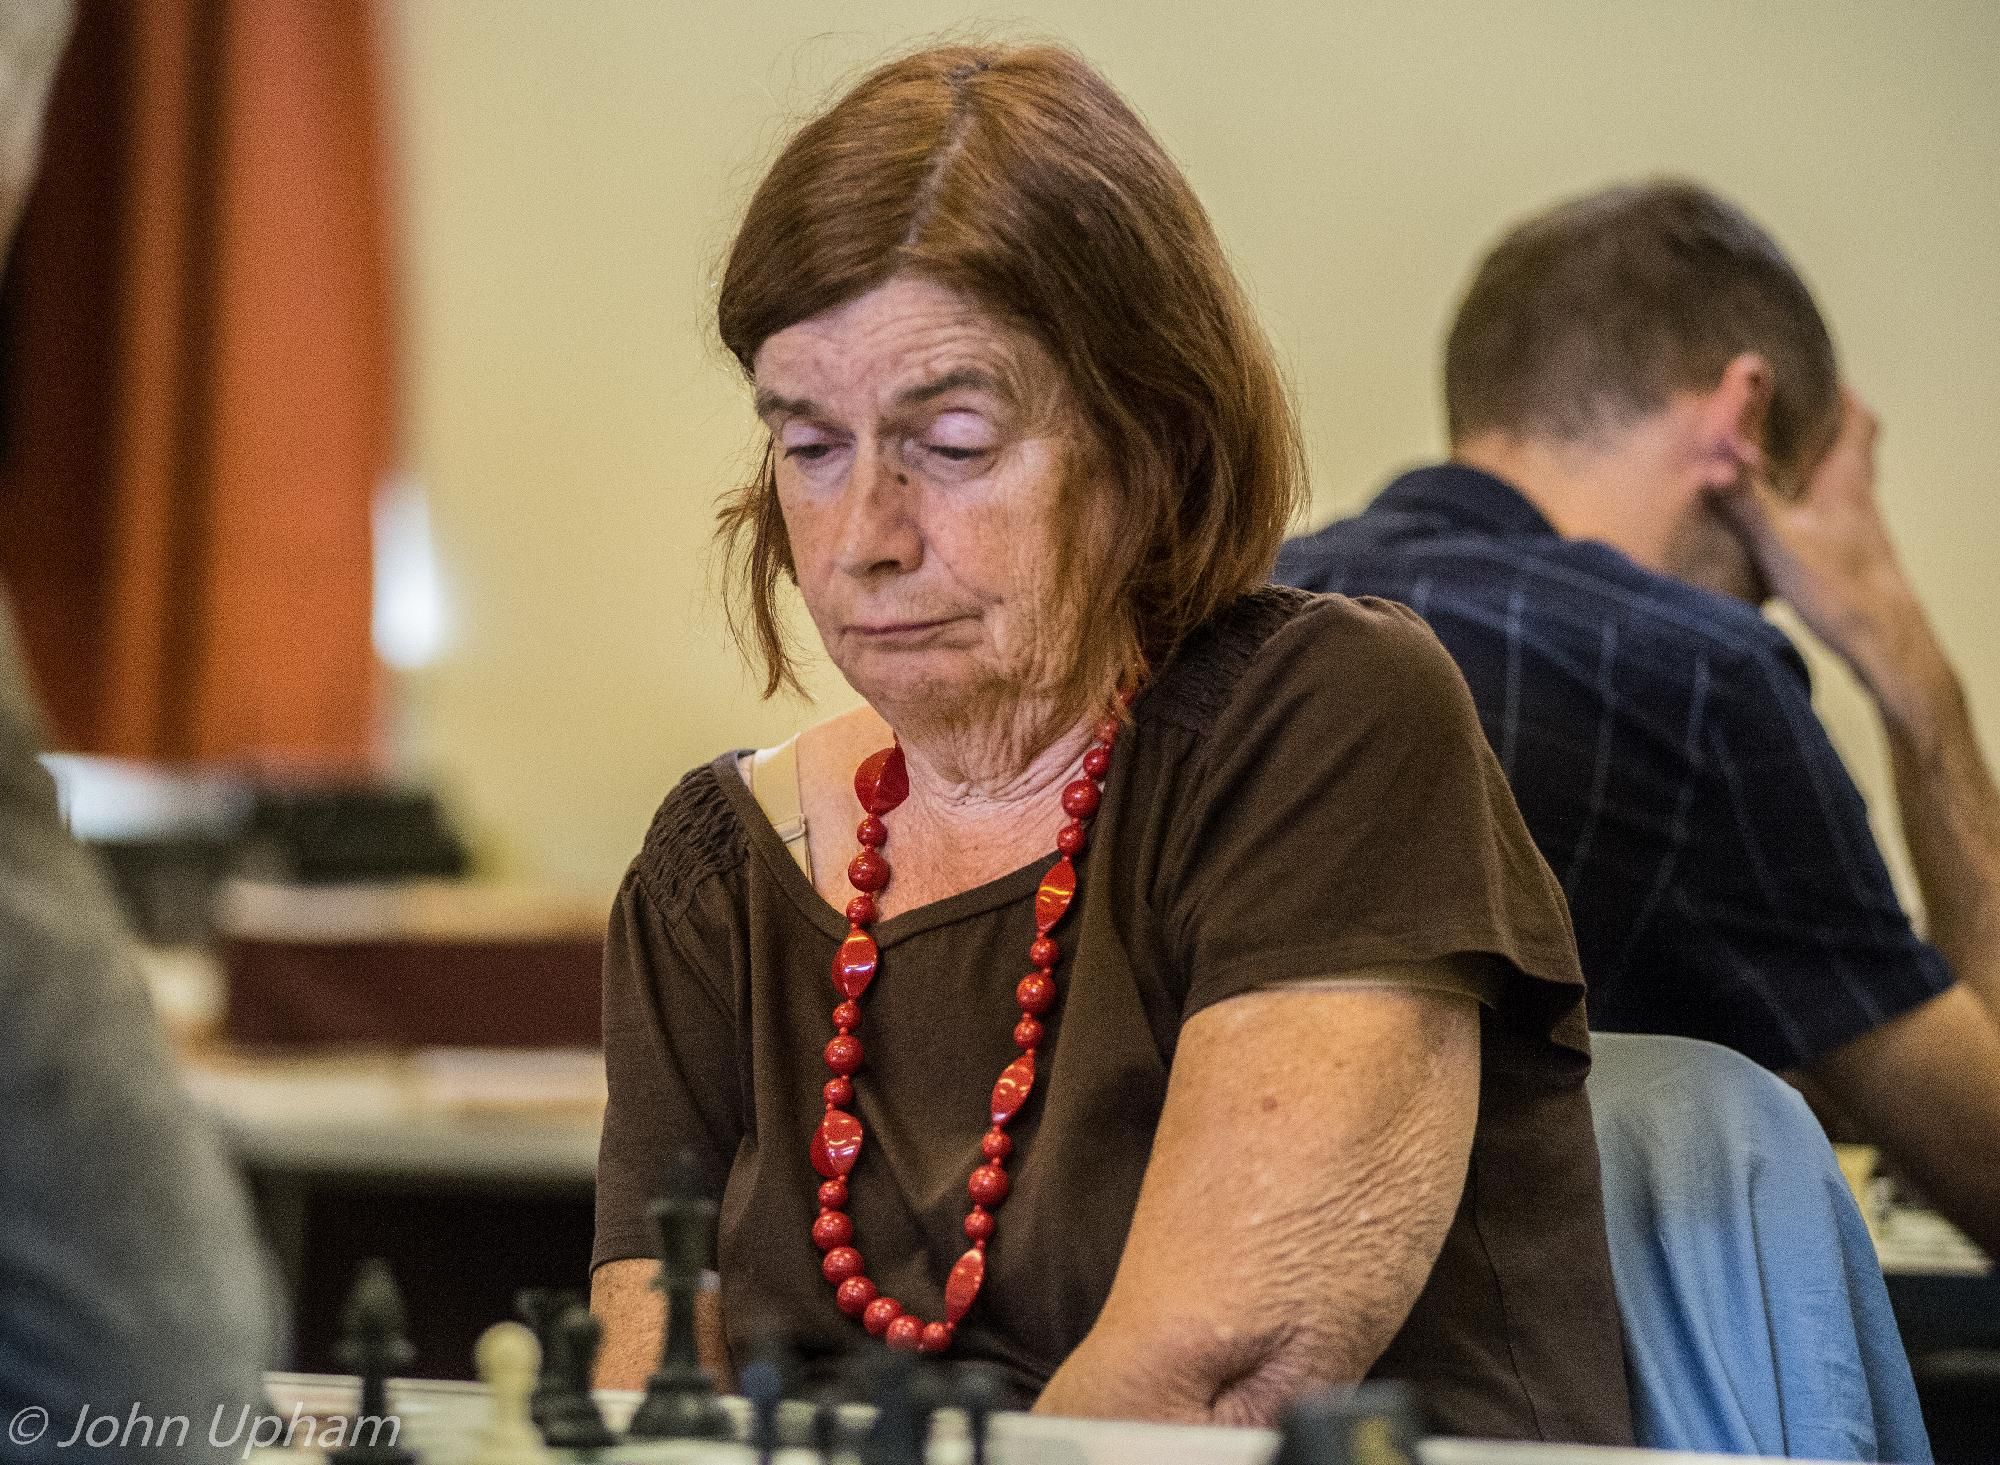 Dinah Norman at the 2017 Keith Richardson Memorial organised by Camberley Chess Club. Courtesy of John Upham Photographic